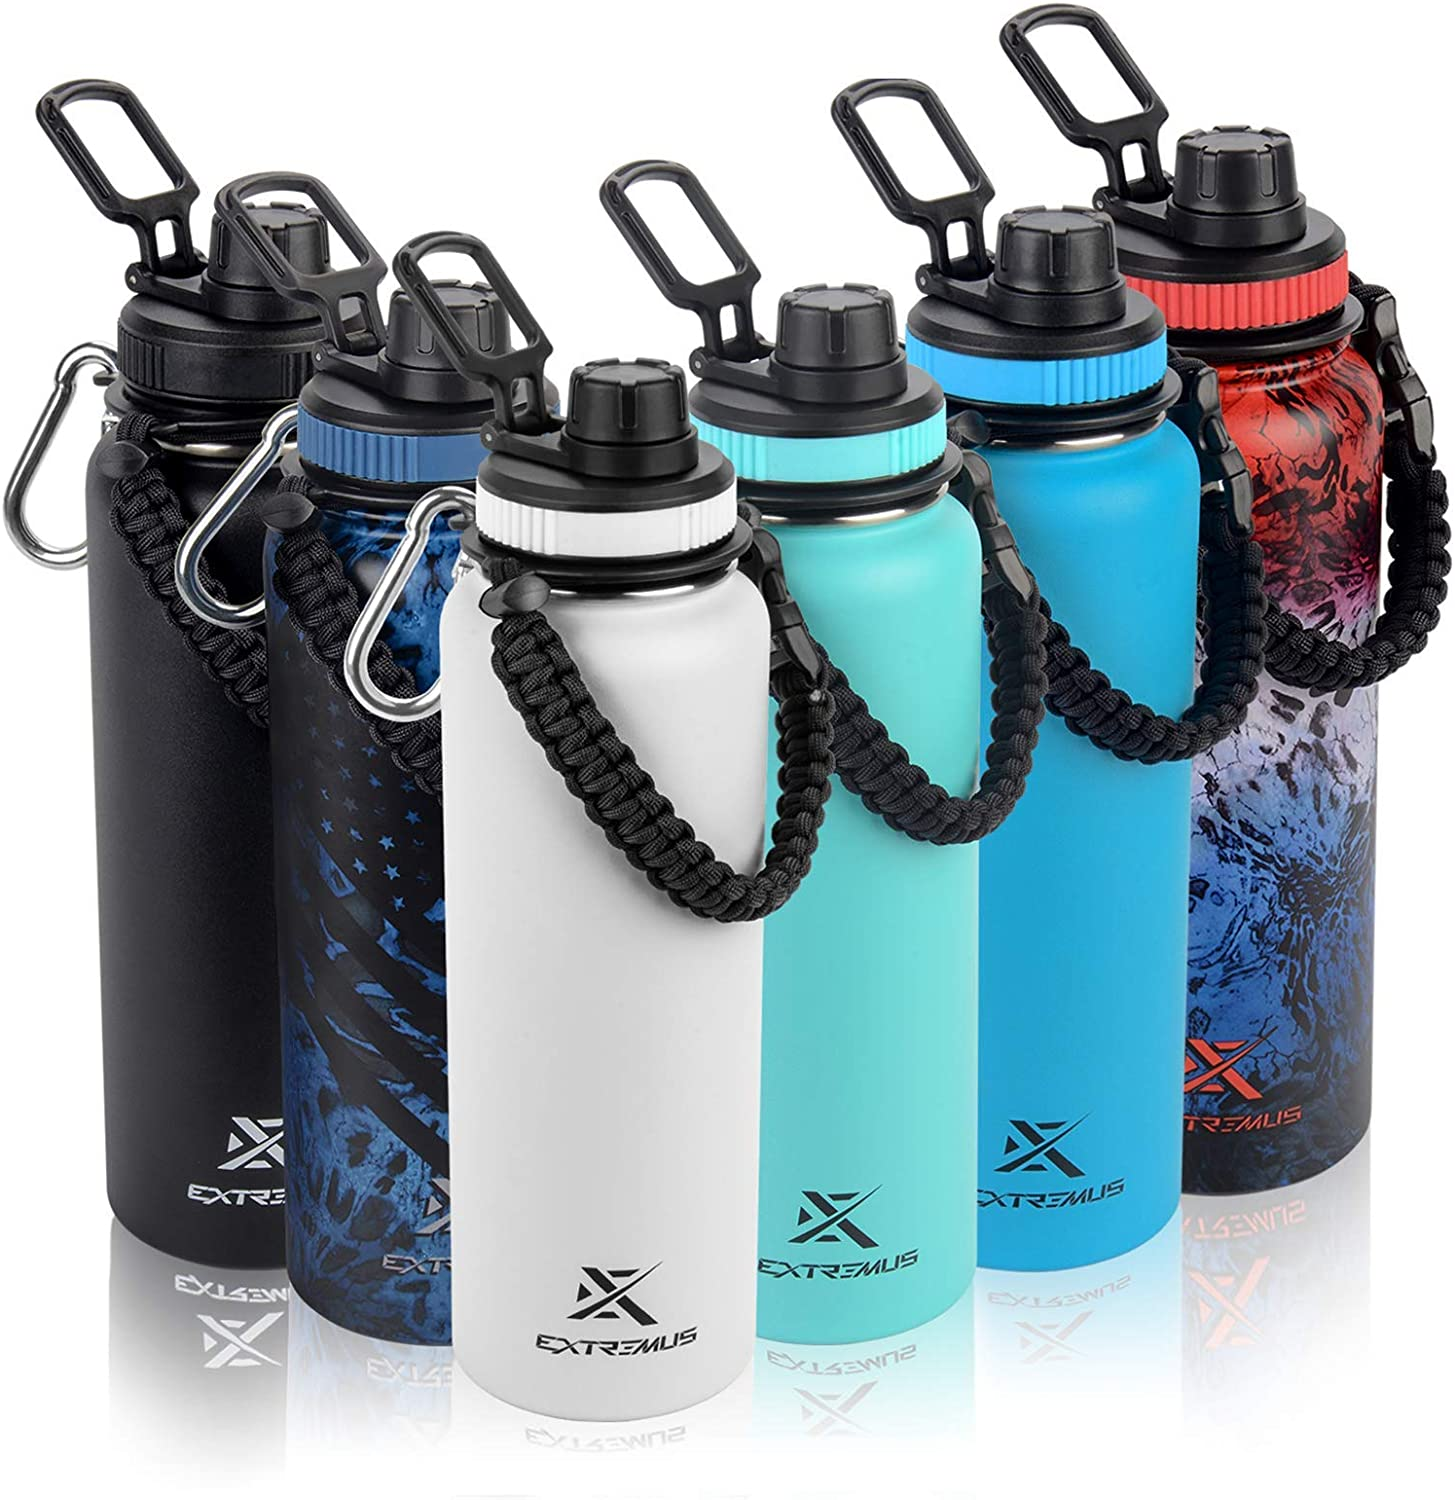 Extremus Deluge Stainless Steel Vacuum Insulated Sports Water Bottle with Wide Mouth, 100% Leak-Proof Chug Travel Lid, Thermos, w/ Made in the USA Paracord Survival Handle , 32 oz, Black